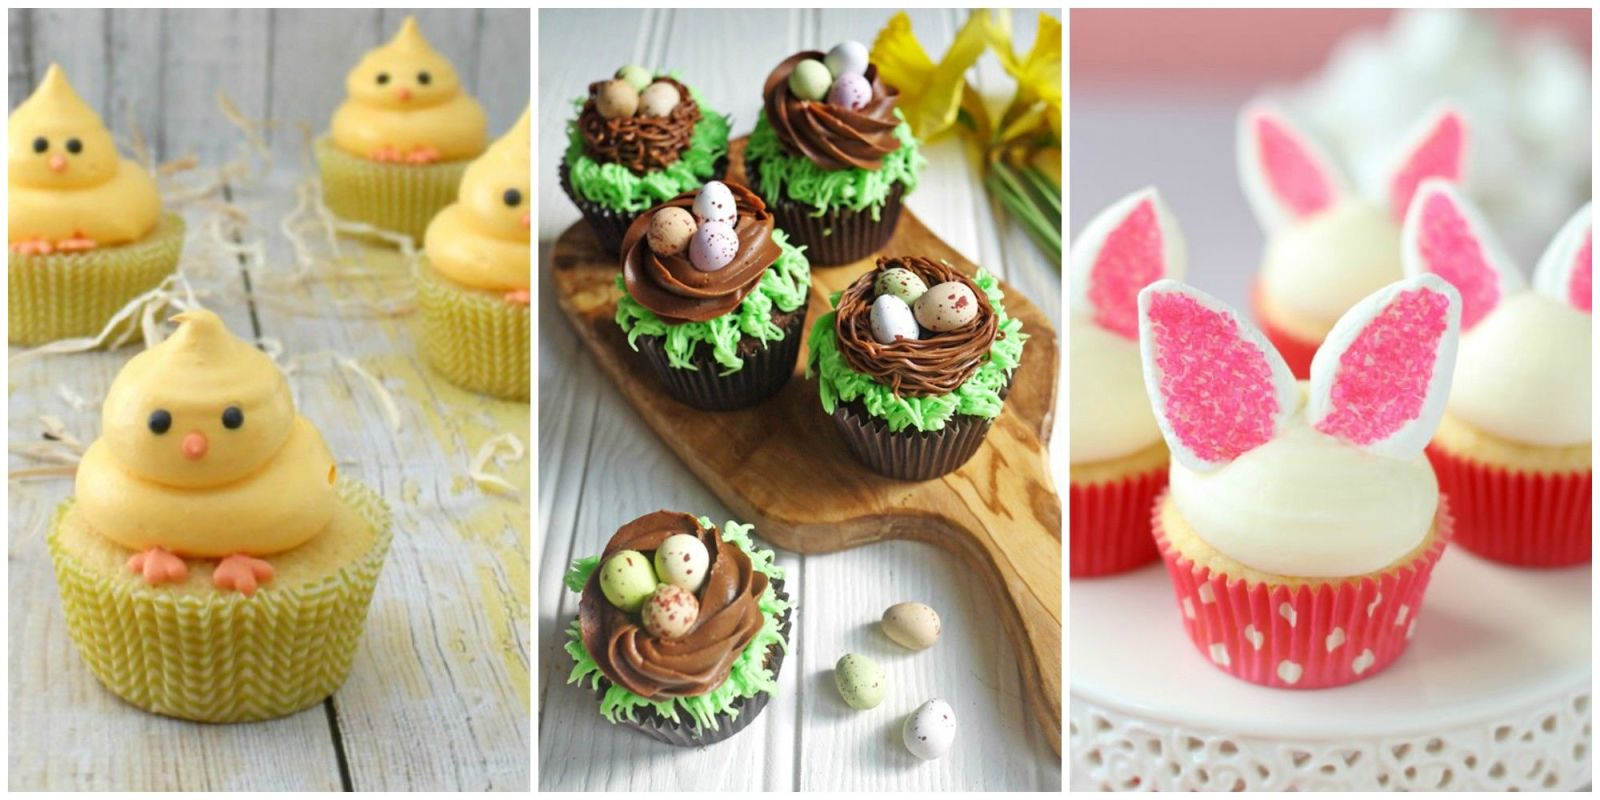 Easy Cake Decorating Ideas For Easter Flisol Home